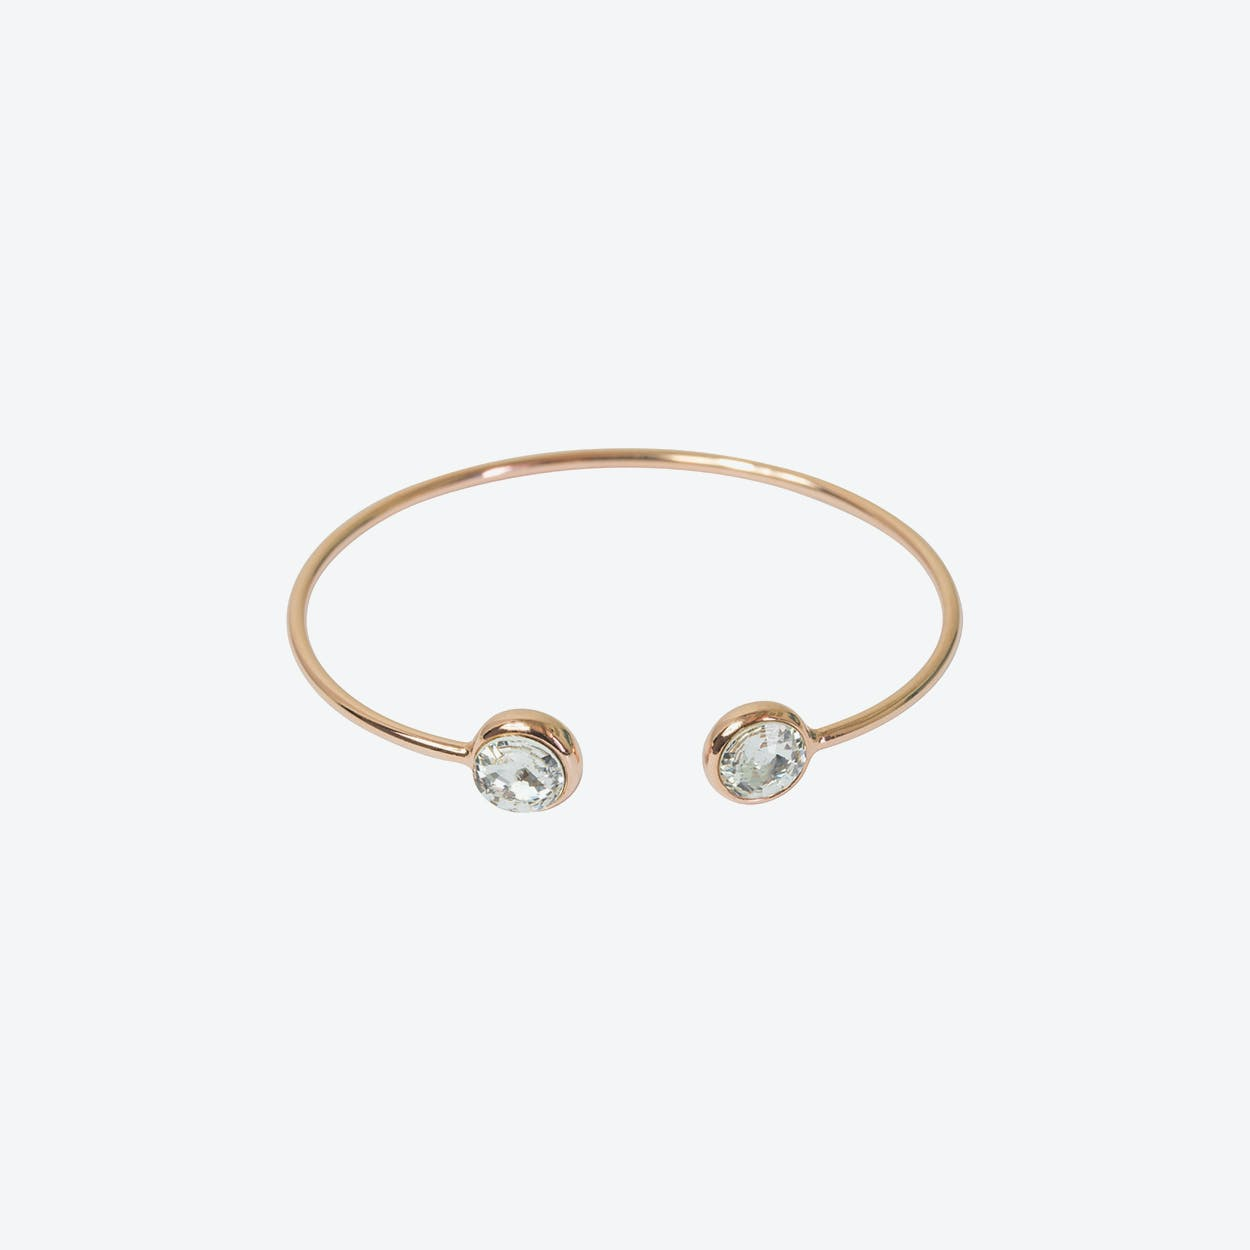 Rose Gold Open Bangle with Crystal Stone Ends